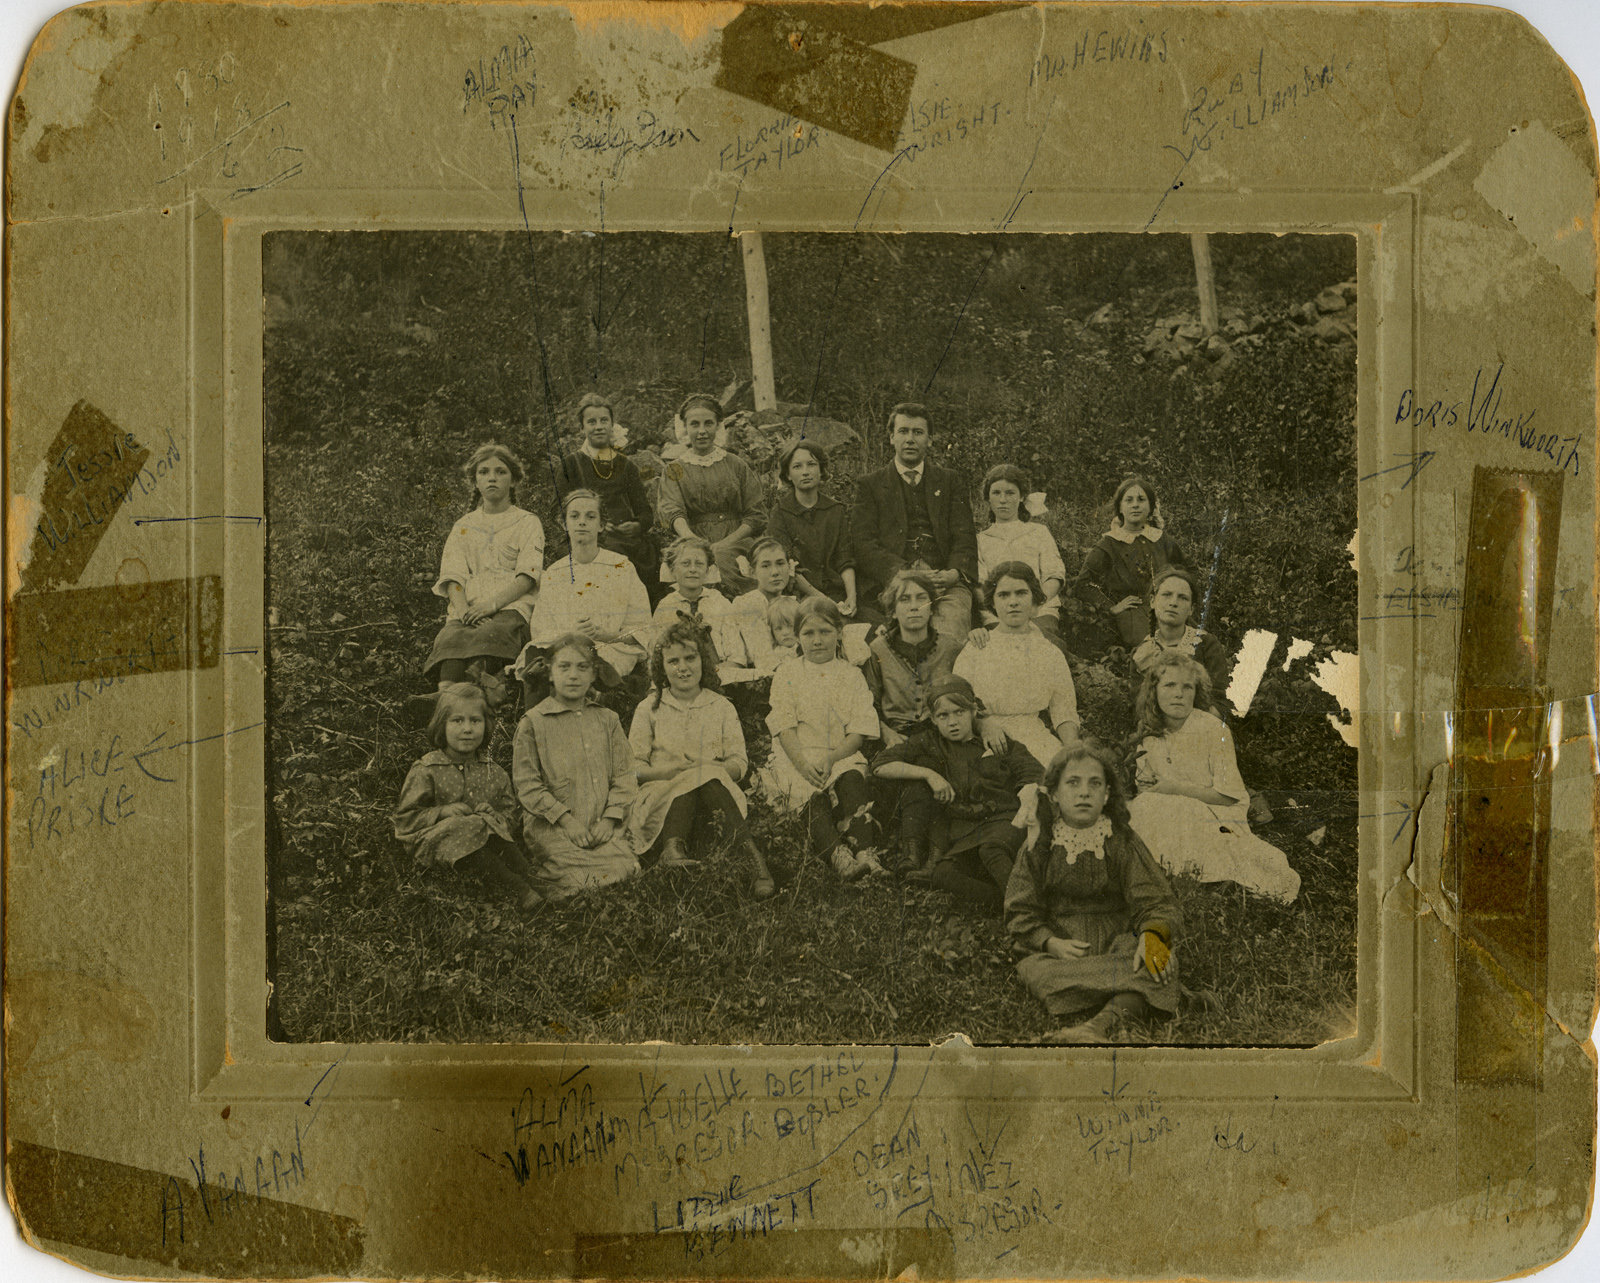 Mr. Hewin's Girl's Club 1918